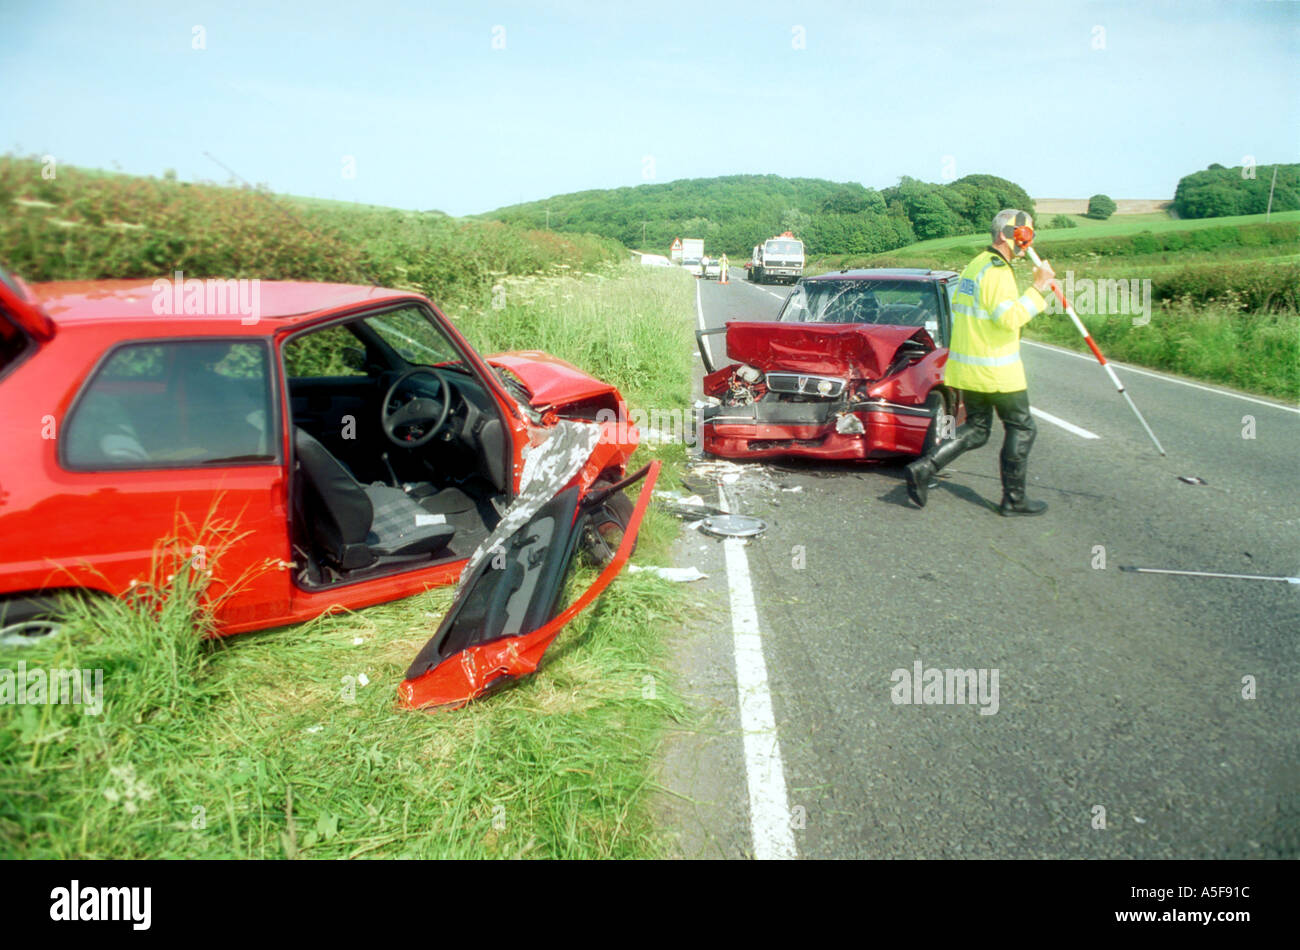 Scene of road traffic accident involving two cars Stock Photo